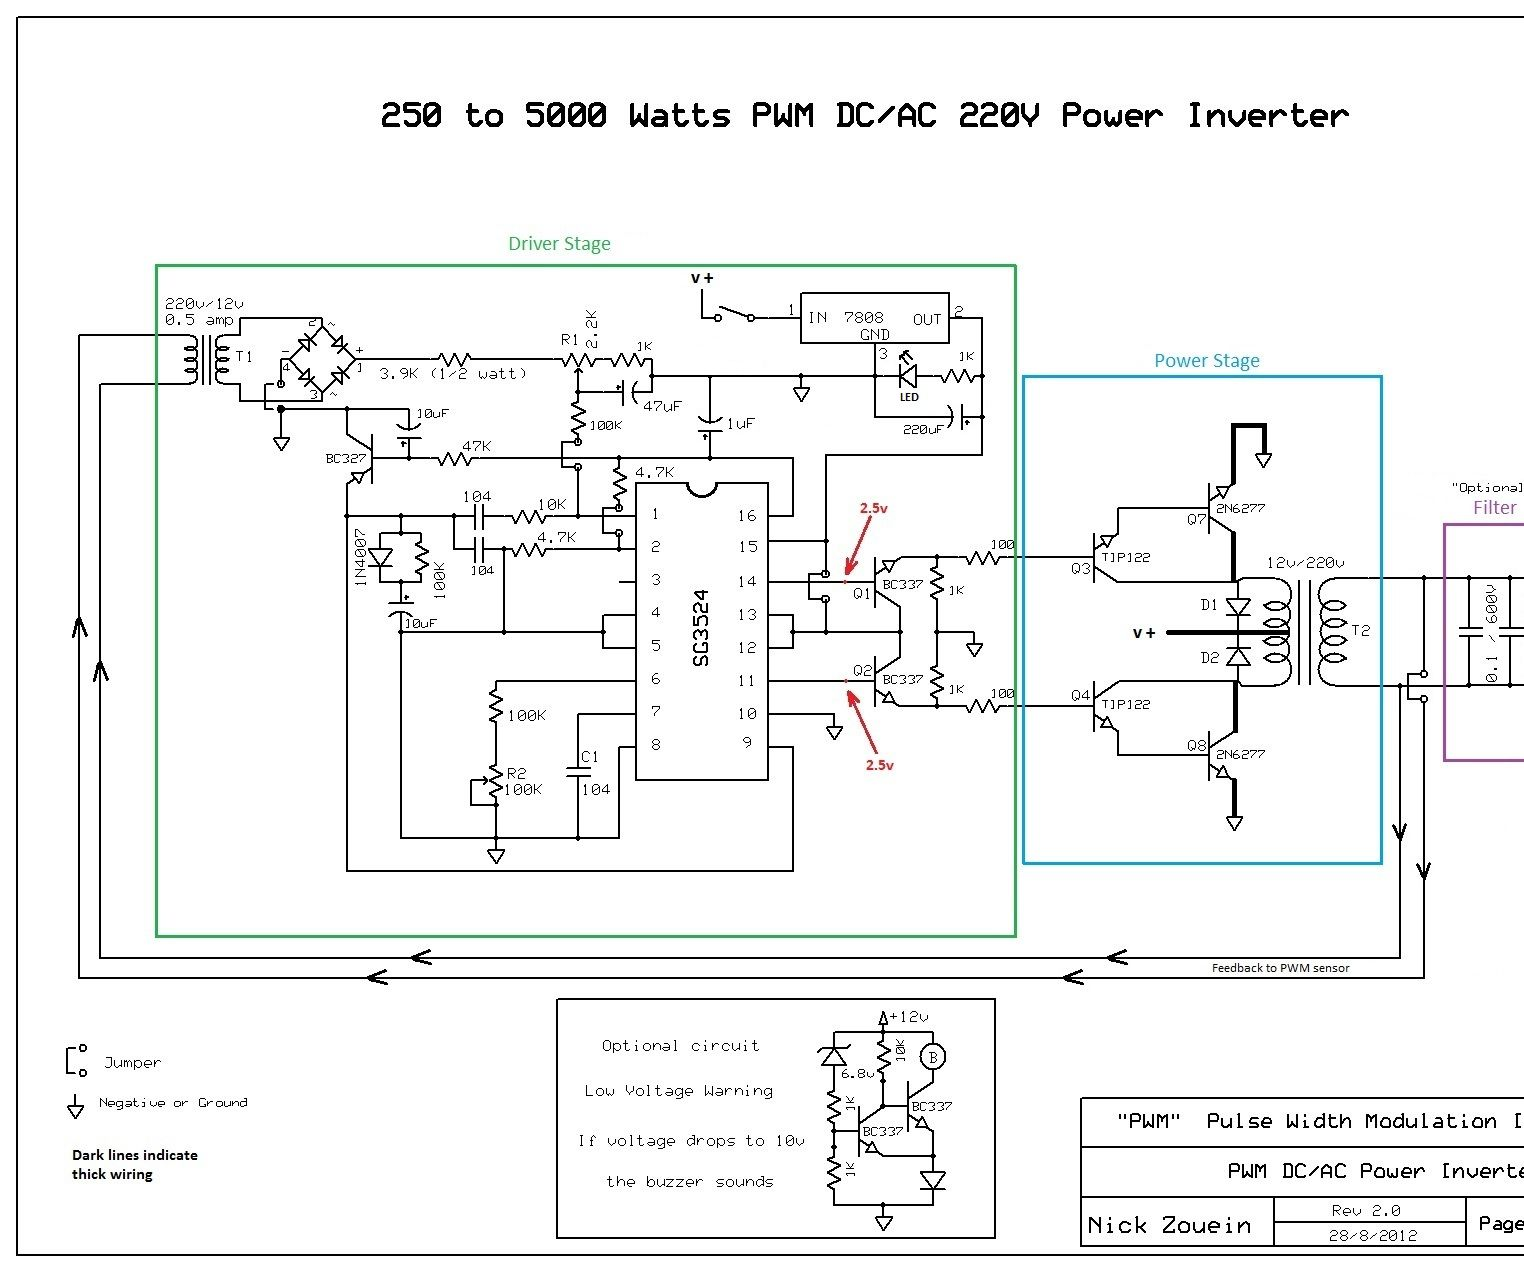 [DIAGRAM_1JK]  250 to 5000 Watts PWM DC/AC 220V Power Inverter - Instructables | Ac 220v Schematic Wiring |  | Instructables